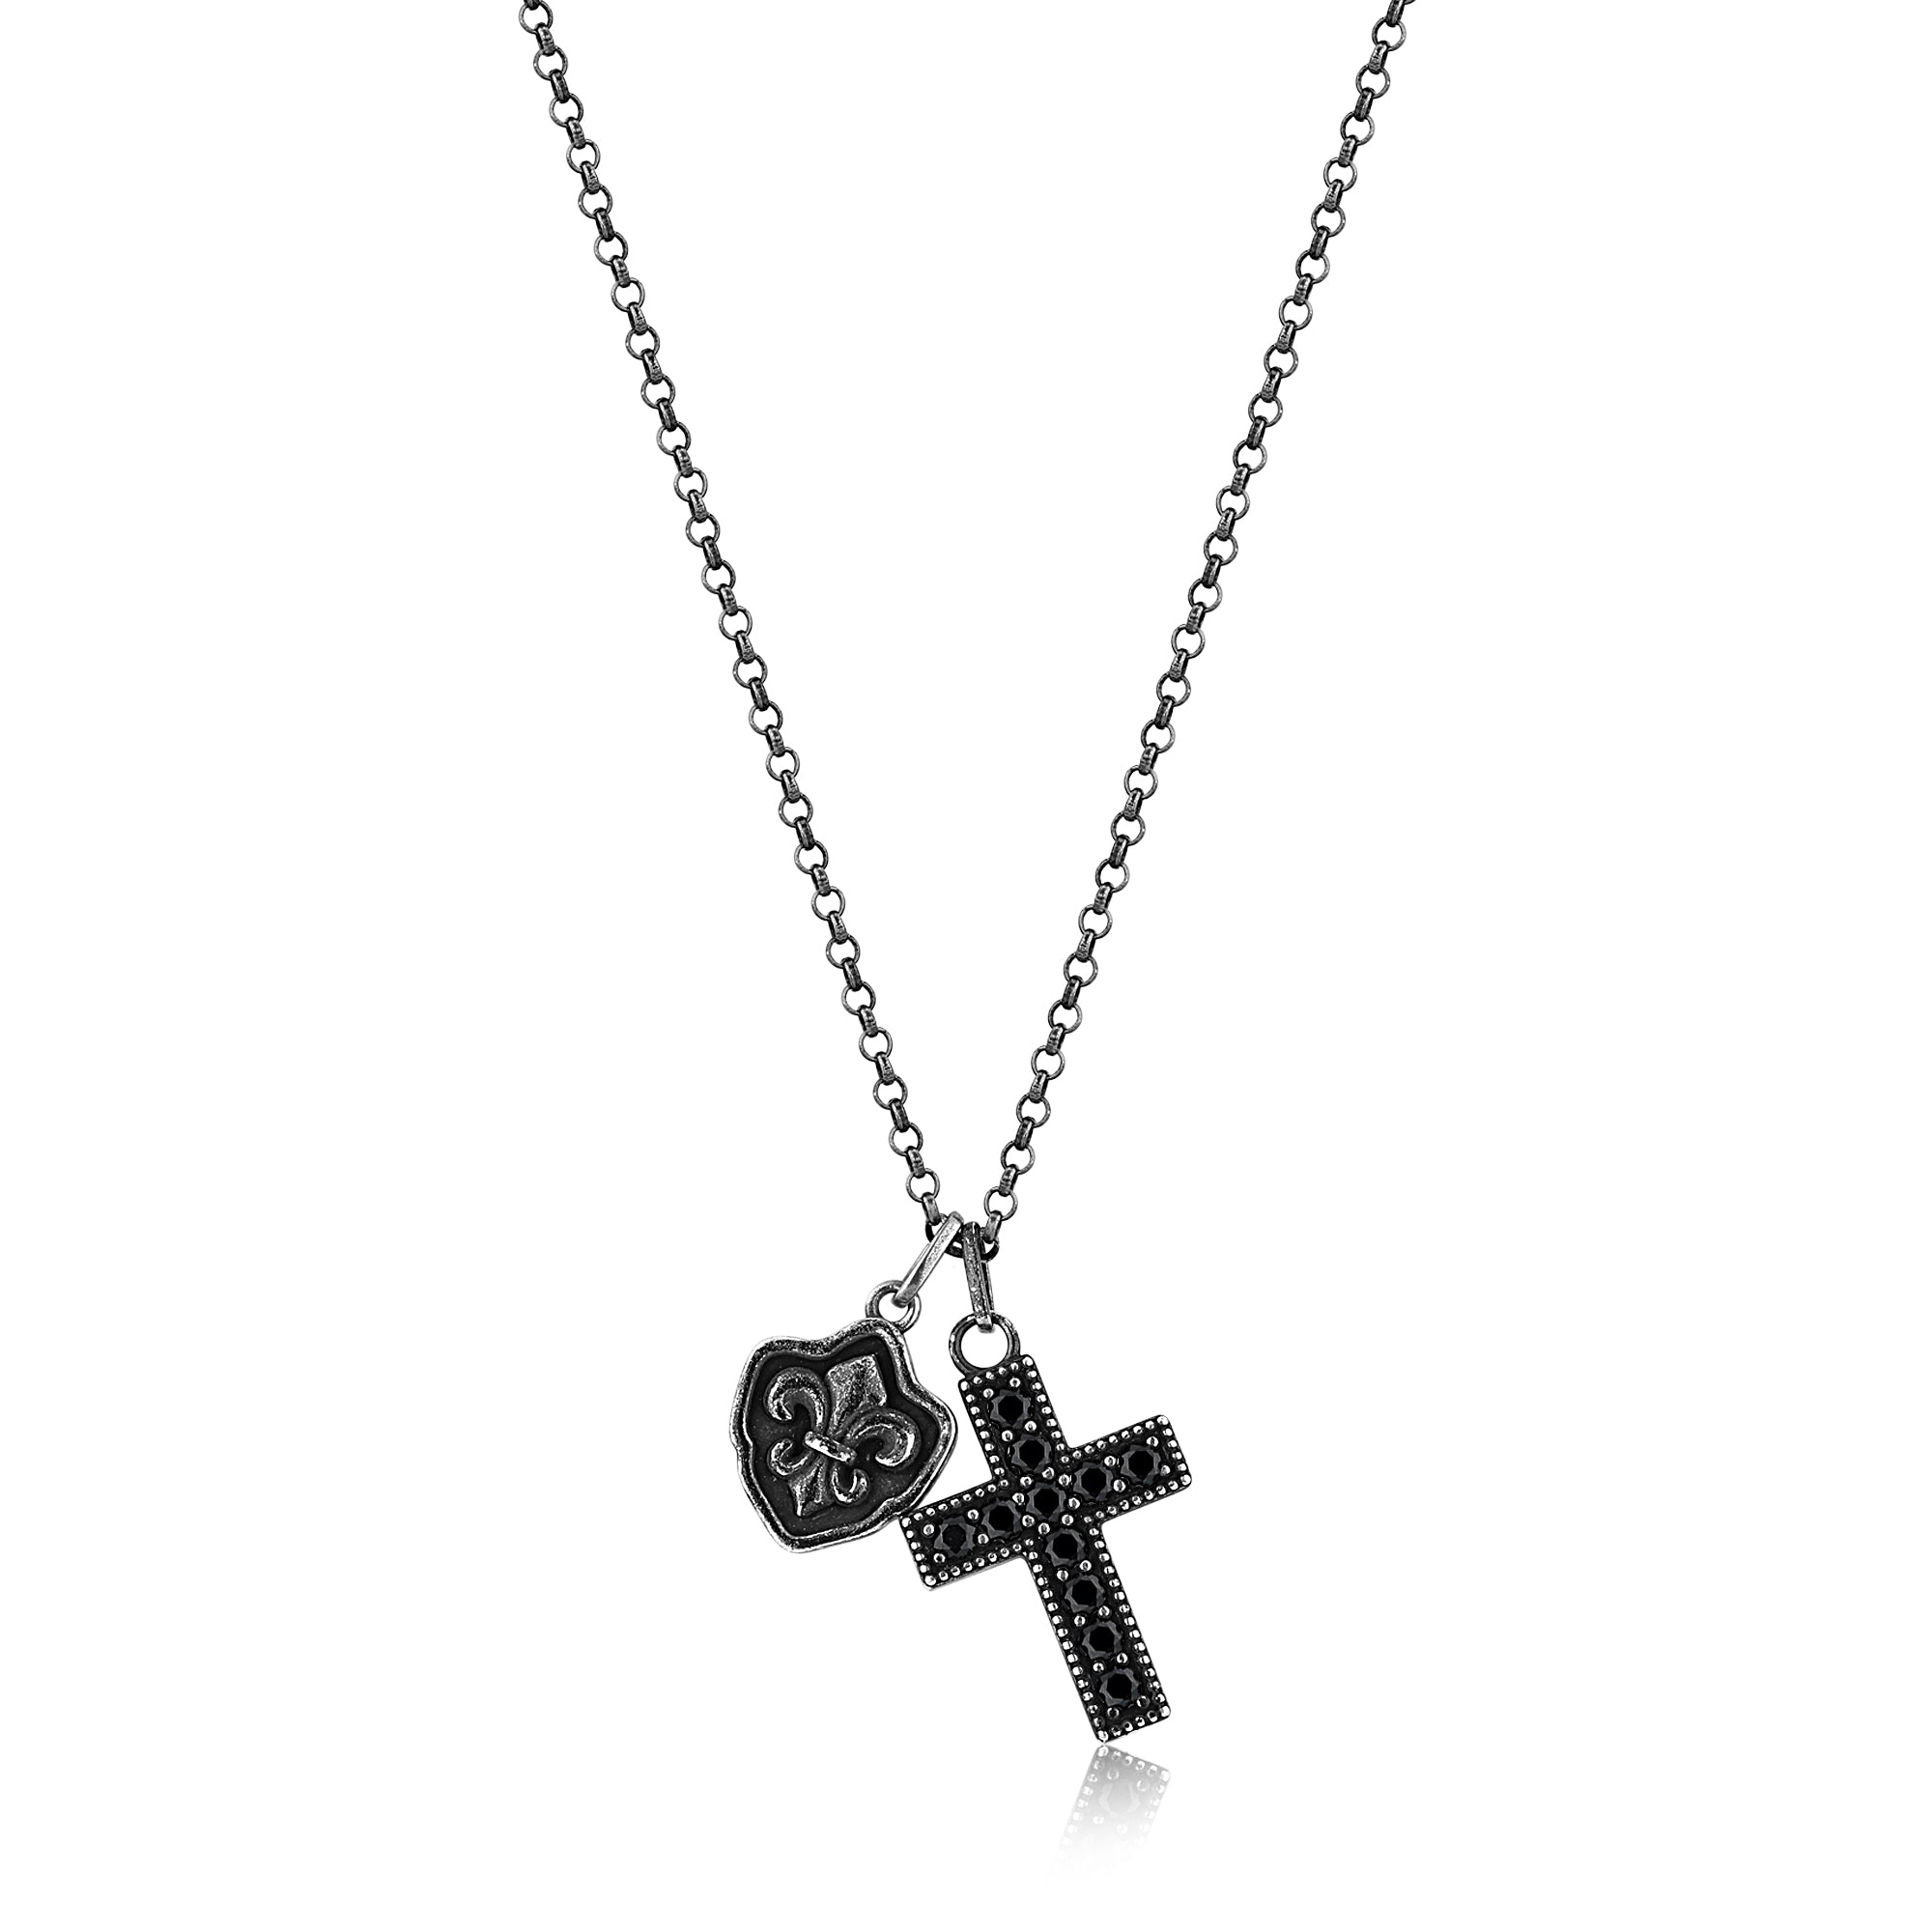 Silver Necklace with Fleur De Lis and Cross Pendants